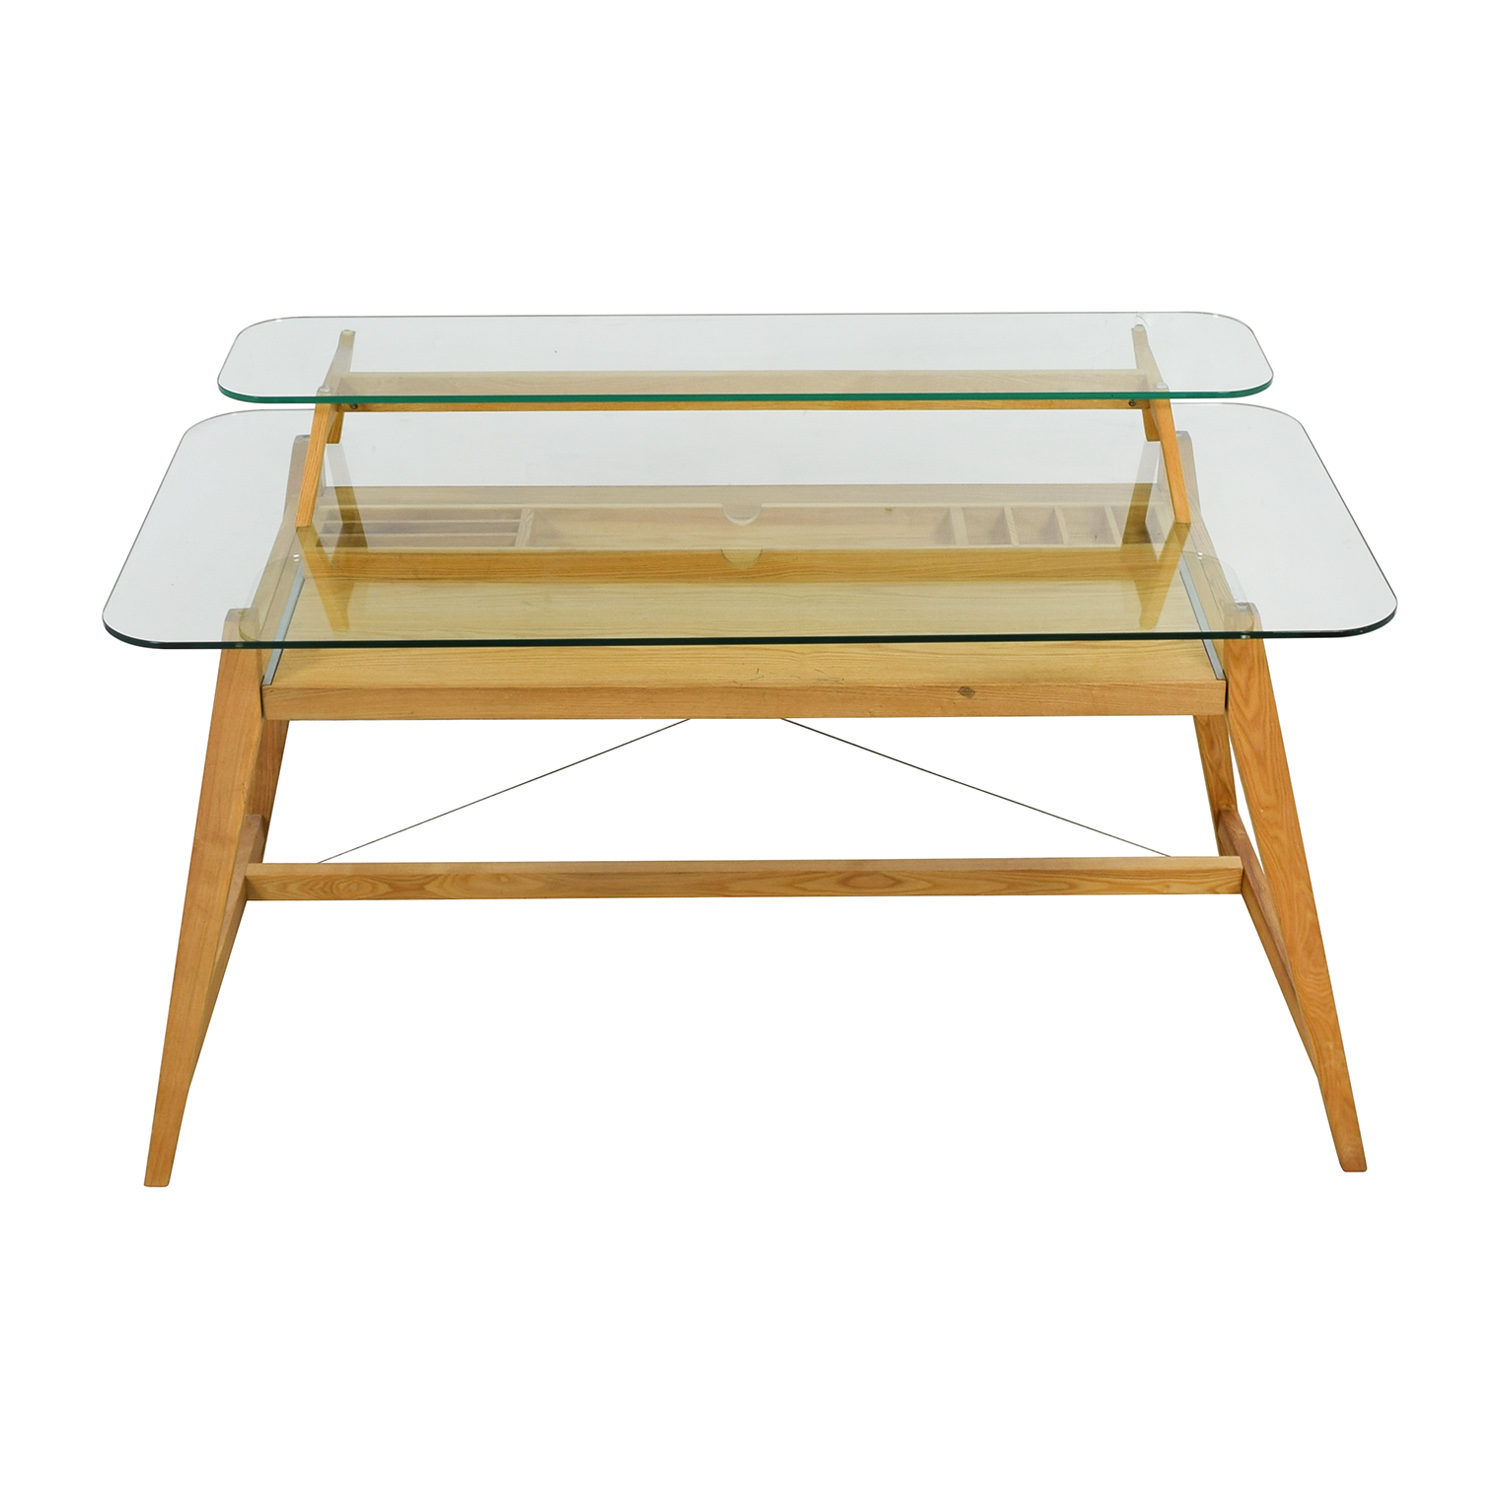 AG Merch AG Merch Natural Two-Tiered Desk with Glass Top second hand